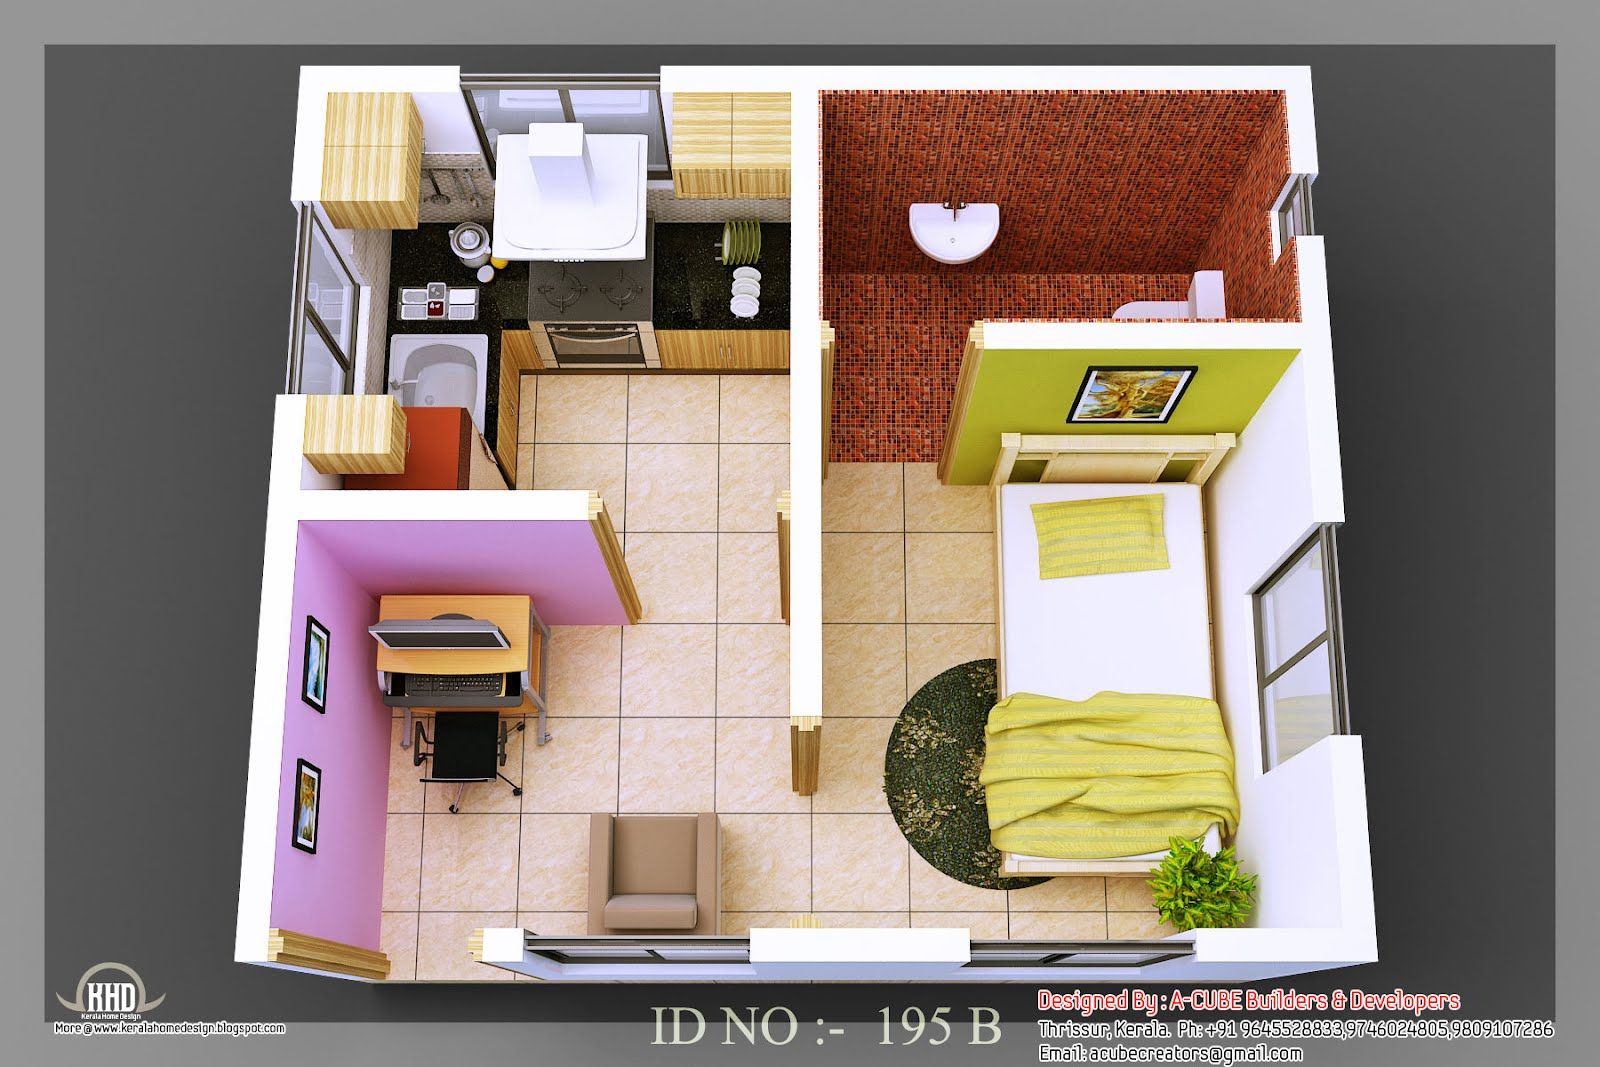 Perfect Kerala Home Design Image ft kerala home design layout frame plan specifications ground floor is designed in 110 square meter1180 sqft Isometric Views Small House Plans Kerala Home Design Floor Information Isometric Small House Plans